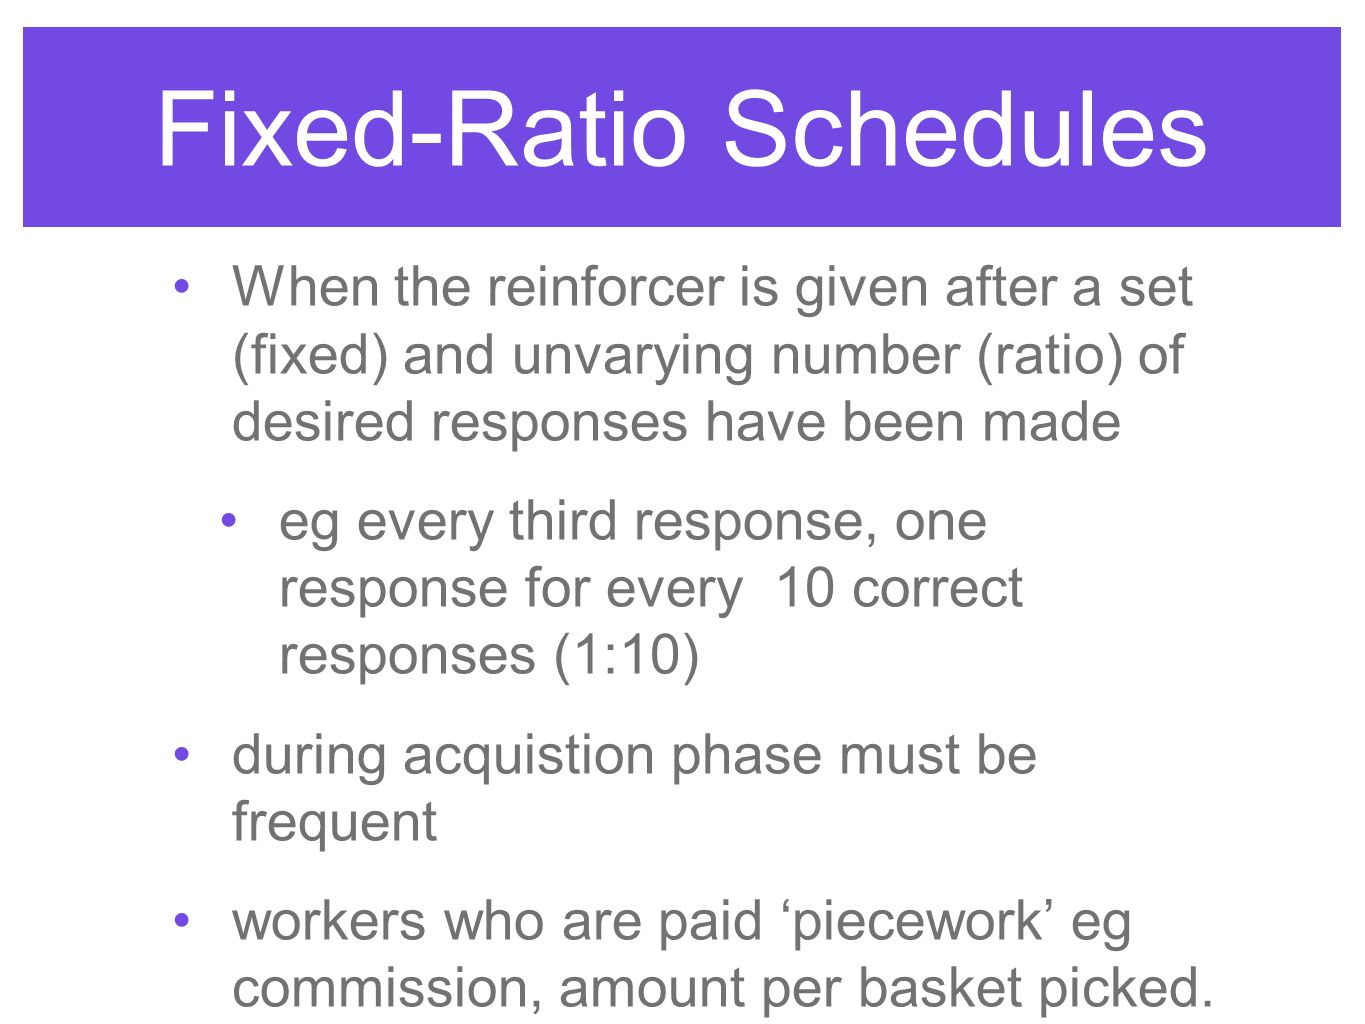 Fixed-Ratio Schedules When the reinforcer is given after a set (fixed) and unvarying number (ratio) of desired responses have been made eg every third response, one response for every 10 correct responses (1:10) during acquistion phase must be frequent workers who are paid 'piecework' eg commission, amount per basket picked.